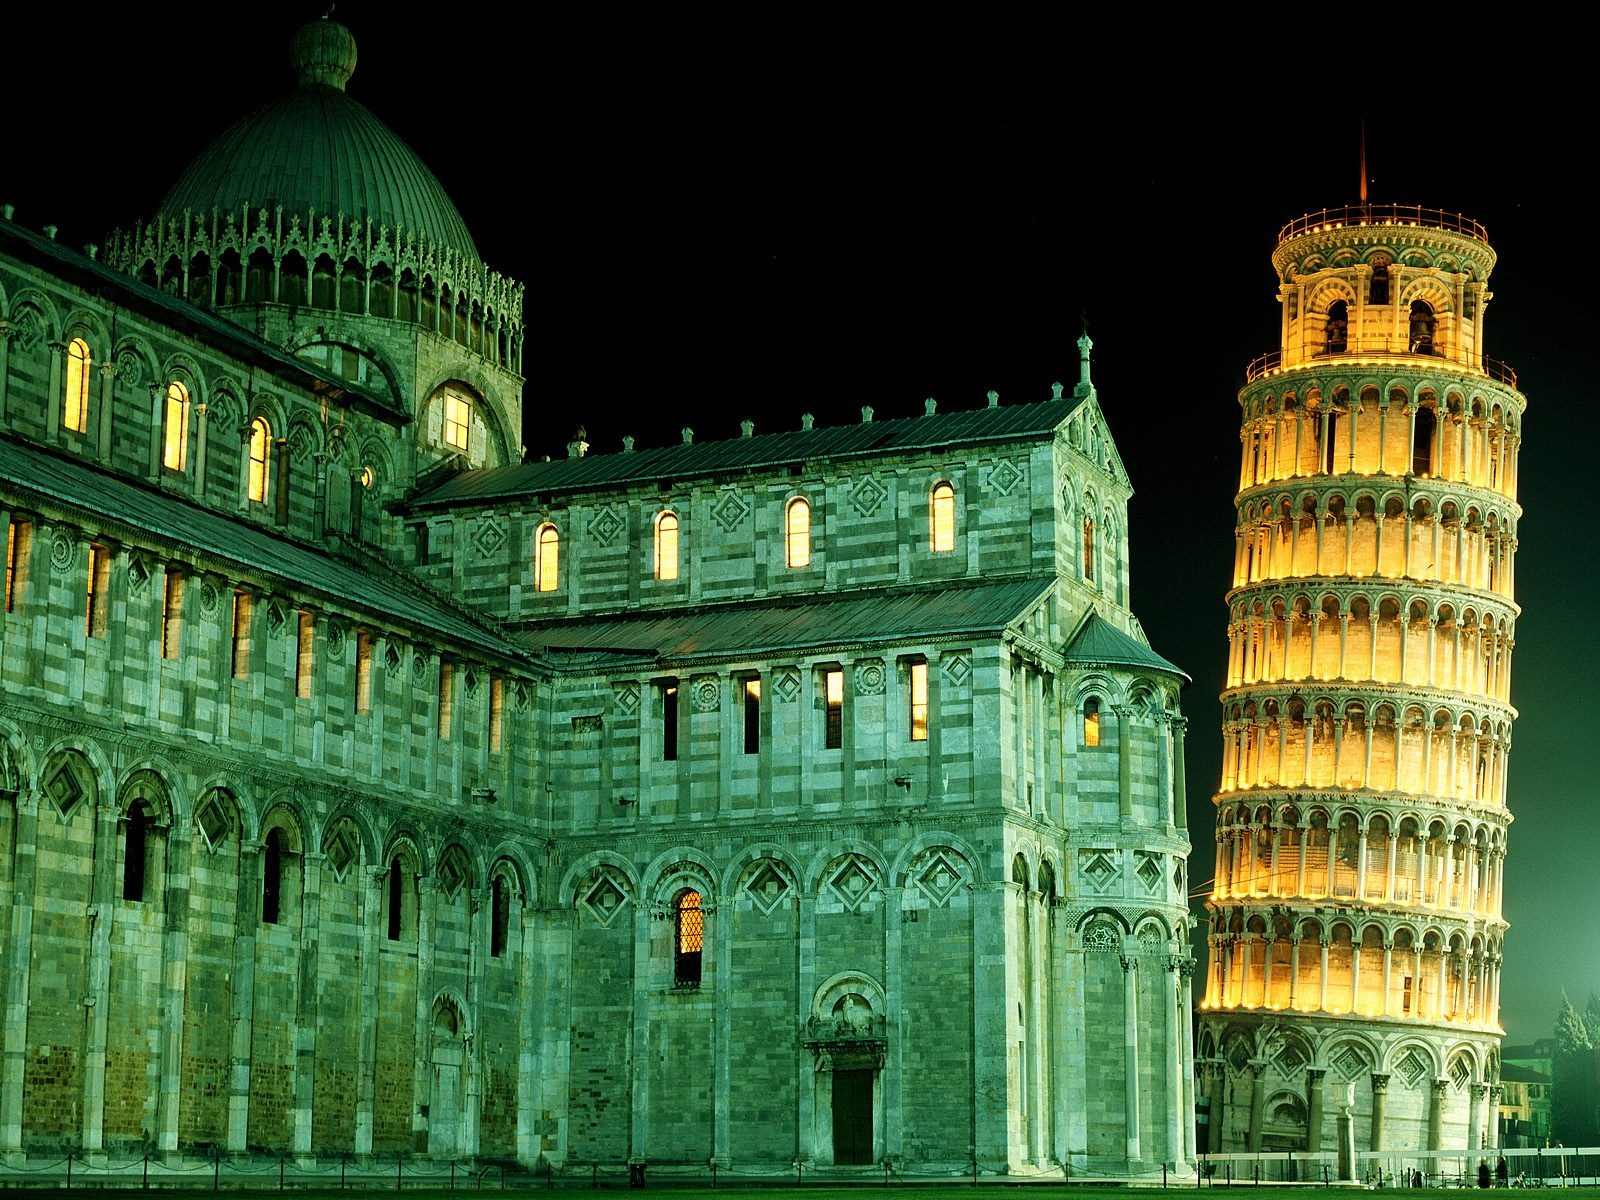 Duomo Leaning Tower Pisa Italy8544615394 - Duomo Leaning Tower Pisa Italy - Tower, Pisa, Mexico, Leaning, Italy, Duomo